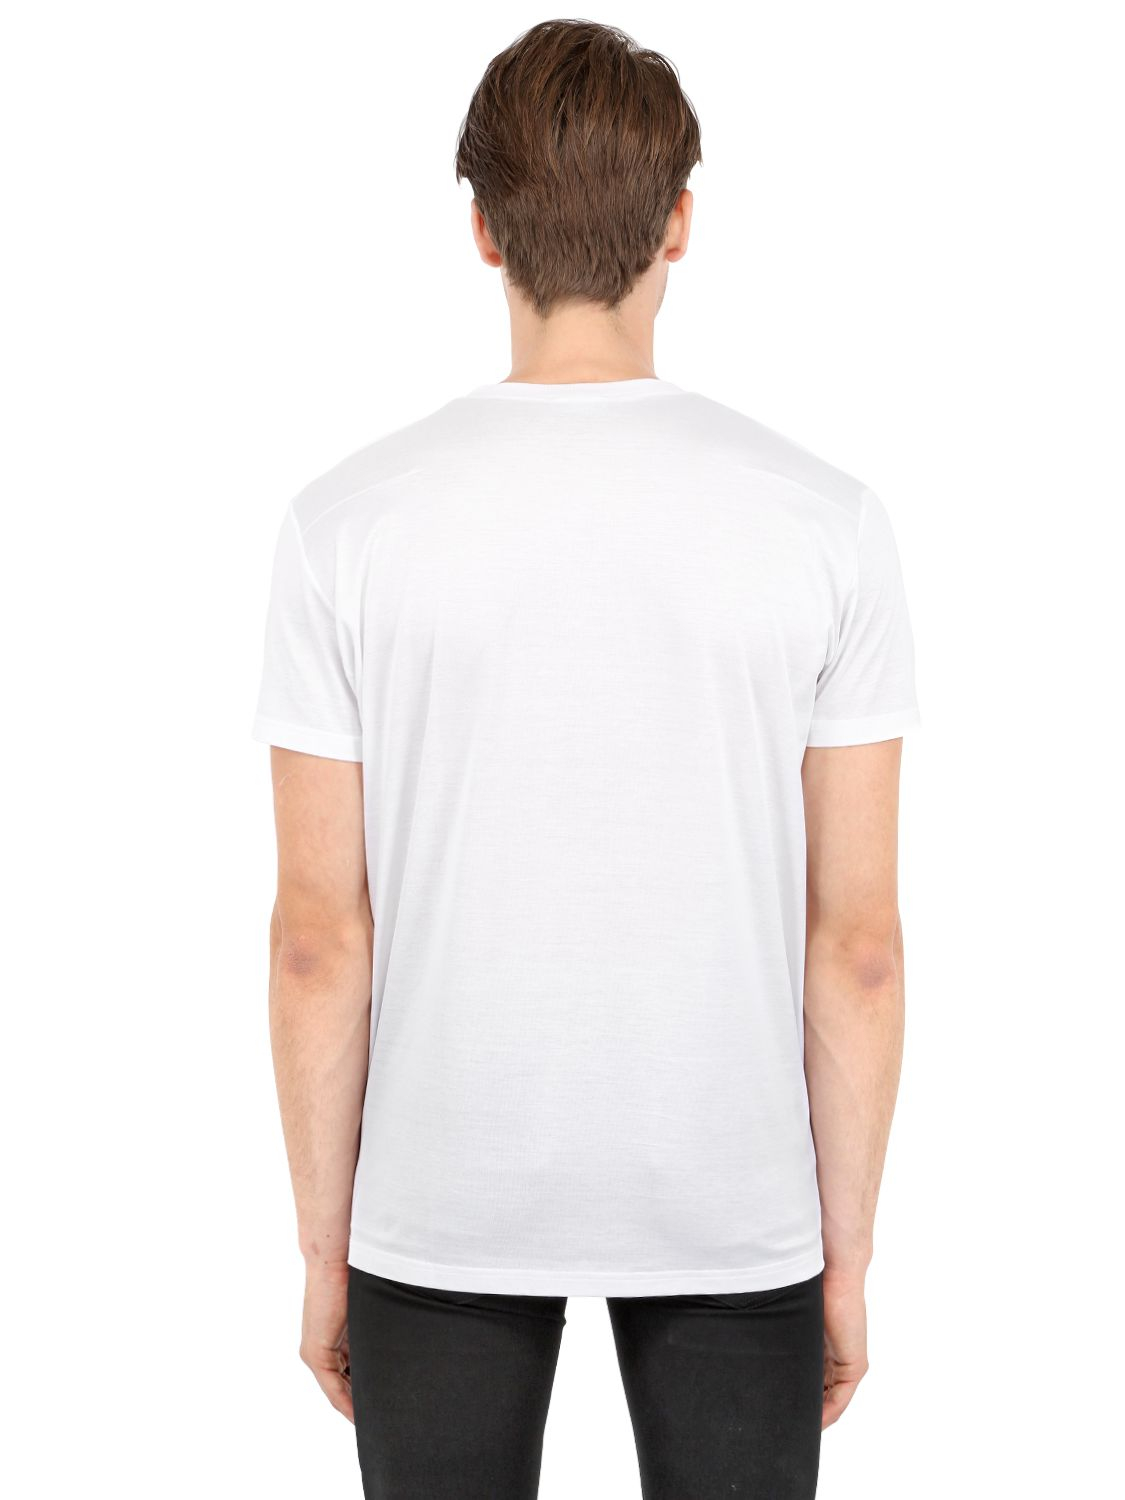 dior homme bee embroidered jersey t shirt in white for men. Black Bedroom Furniture Sets. Home Design Ideas